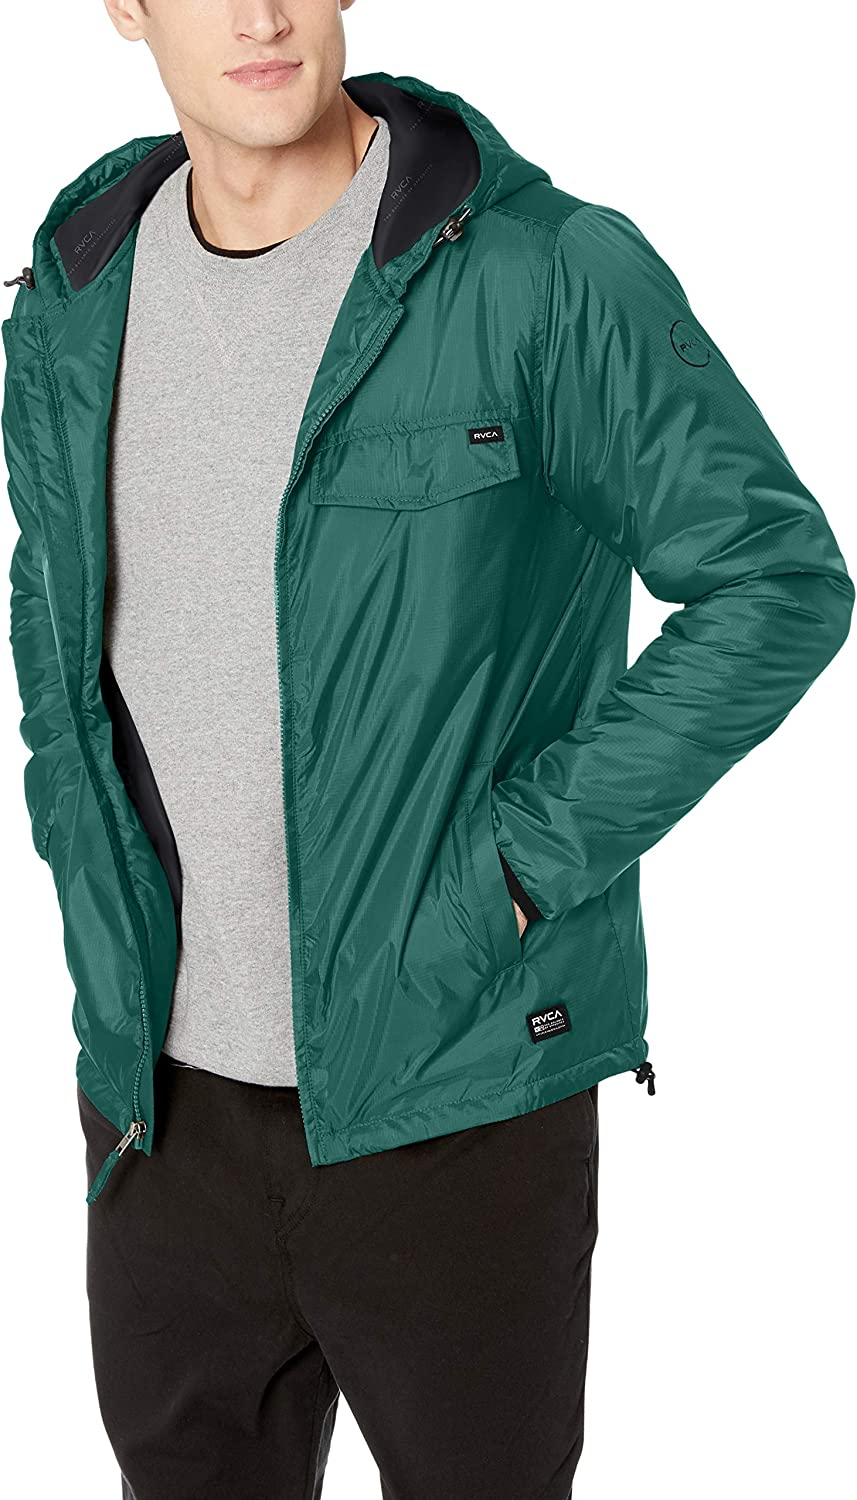 free shipping RVCA Men's Tracer Jacket Online limited product